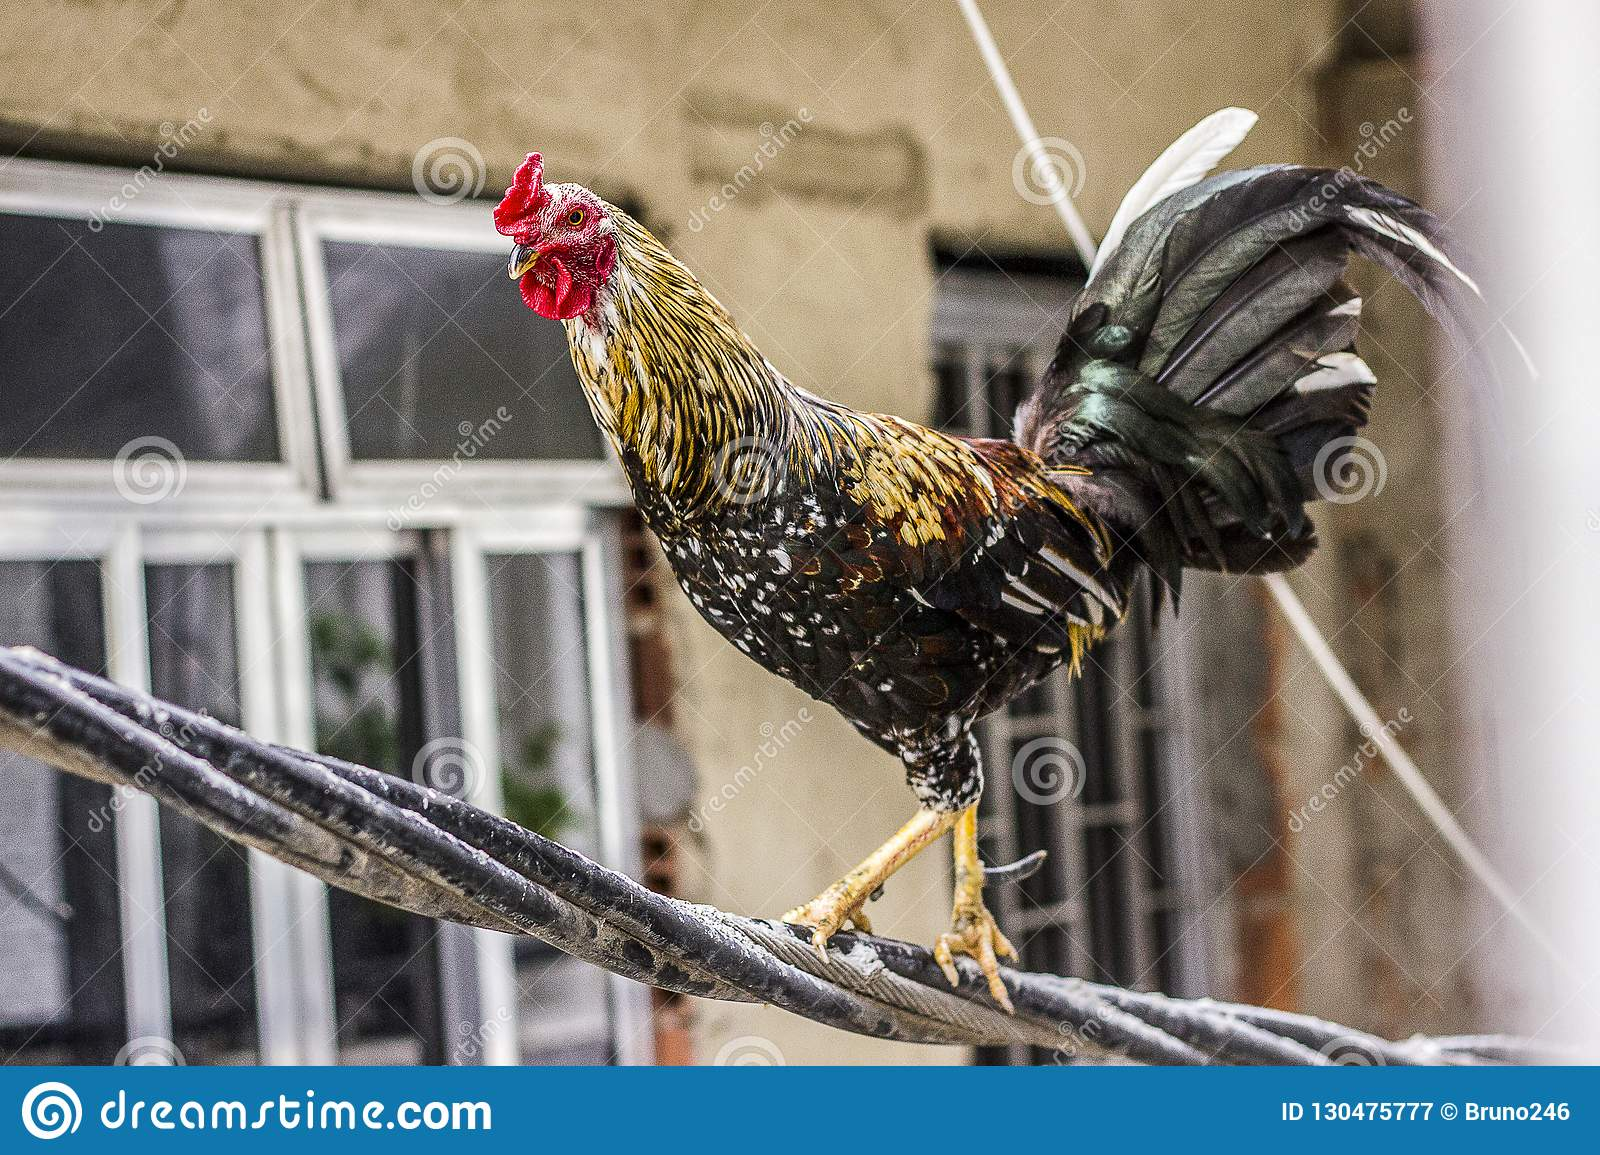 Rooster on wires